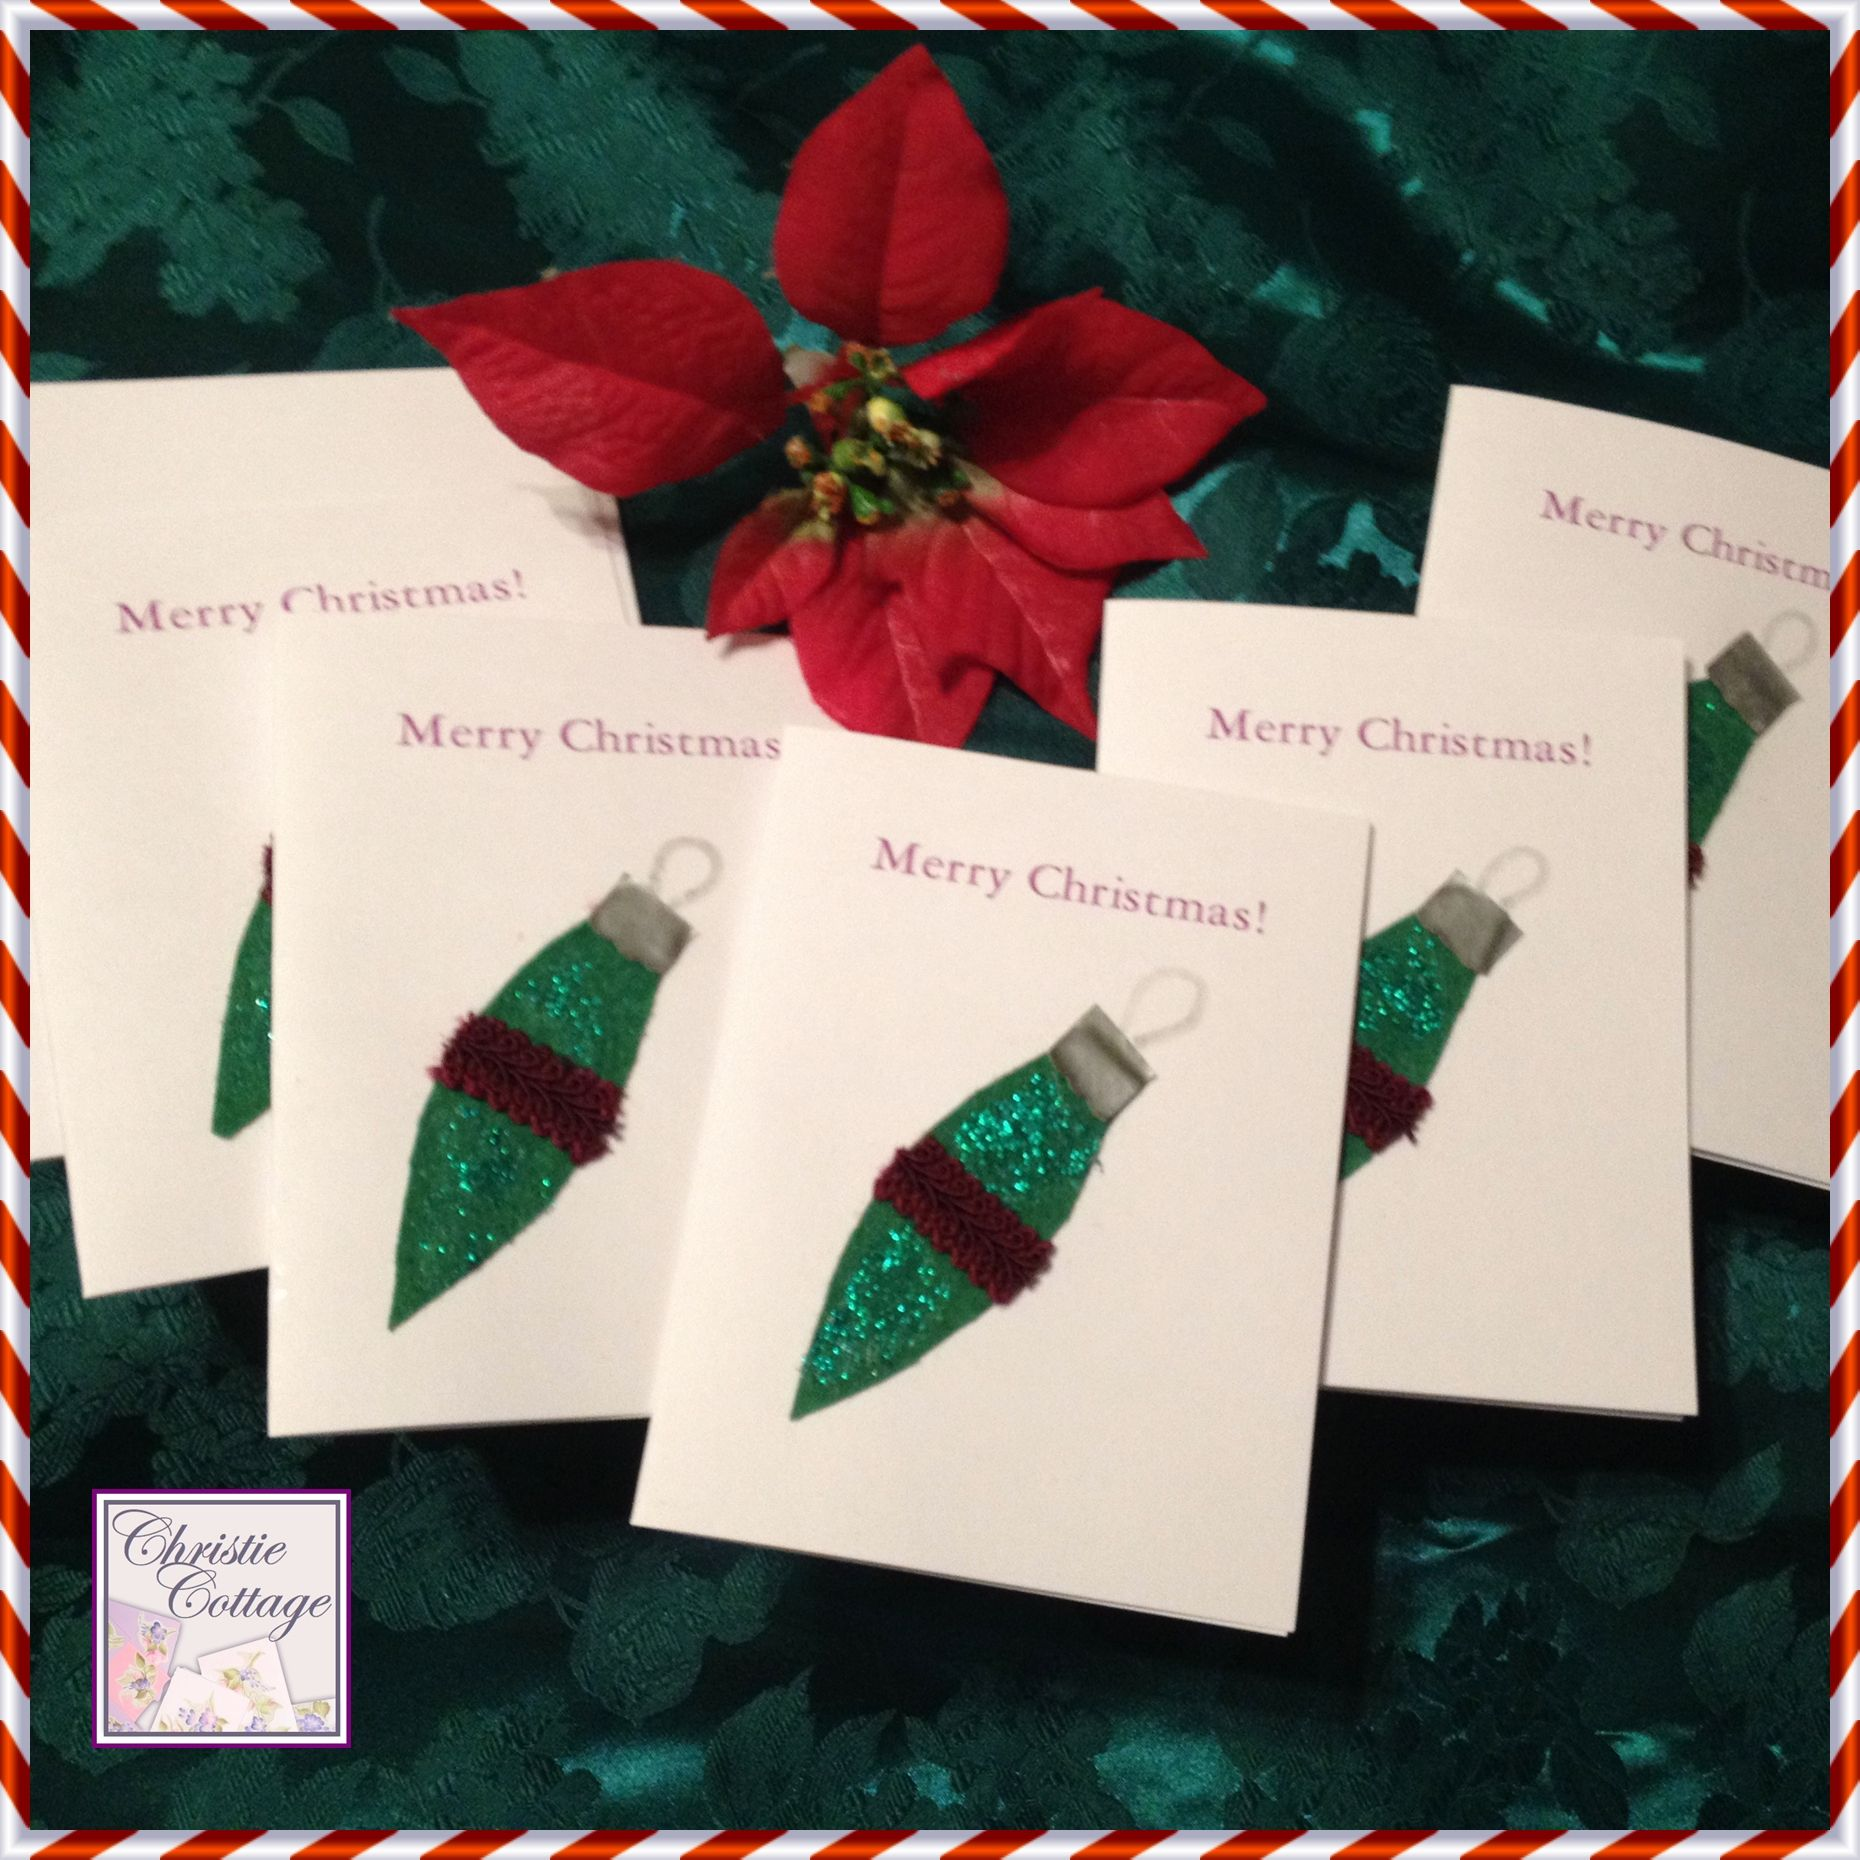 These Cute Christmas Cards Were Made With Felt Scraps And